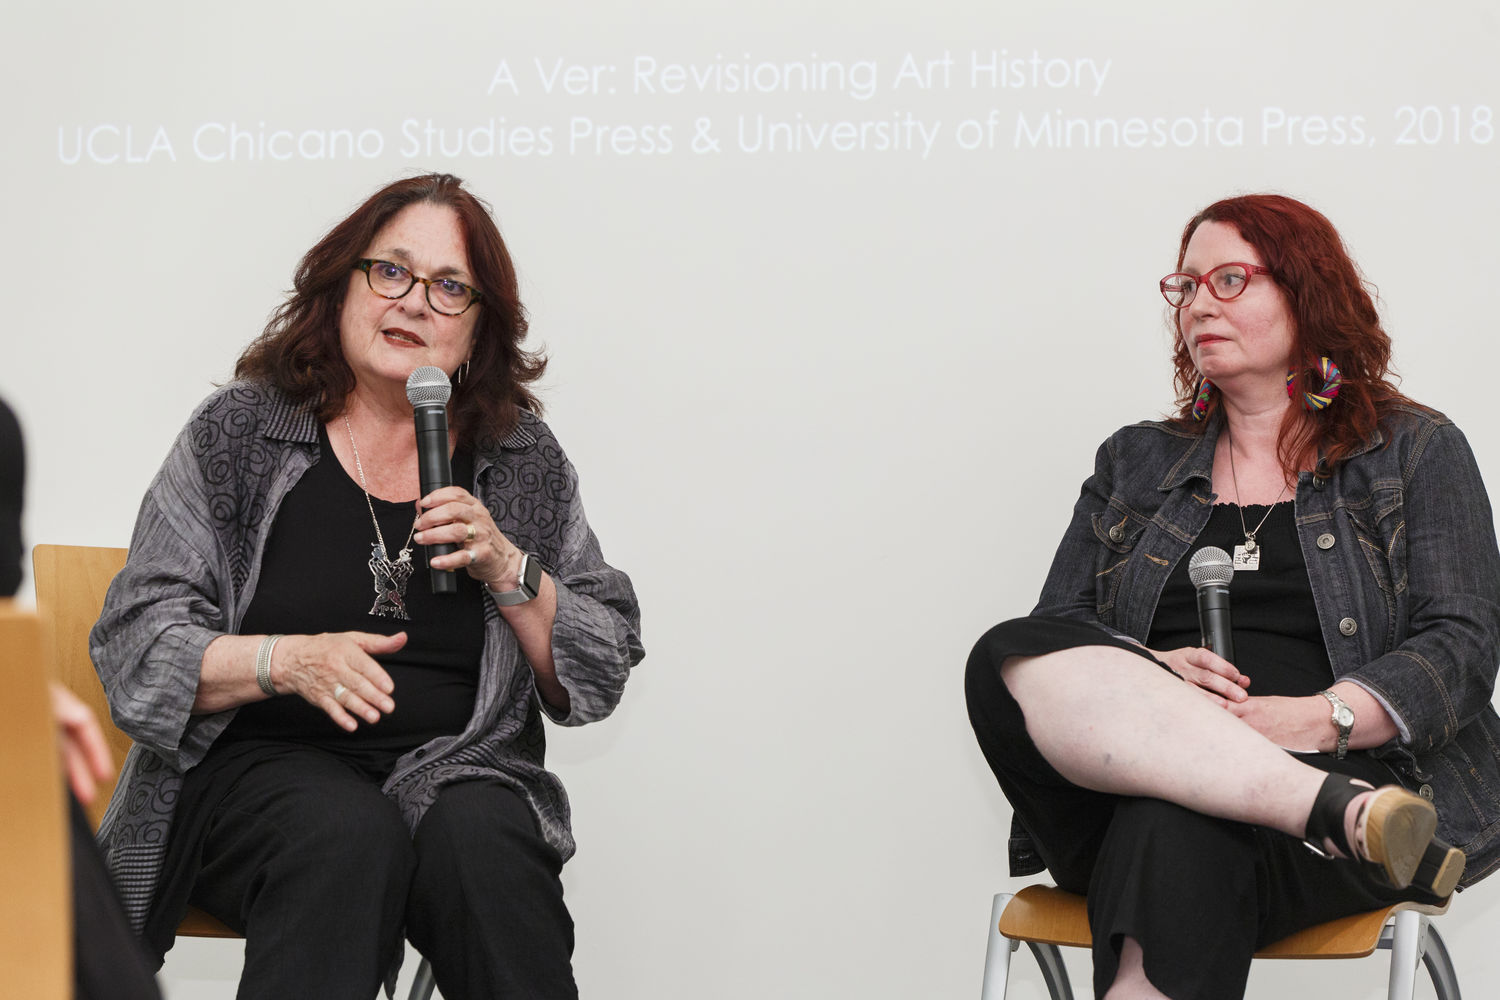 Judith Baca (left) and Anna Indych-López (right). Brooklyn Museum, June 16, 2018